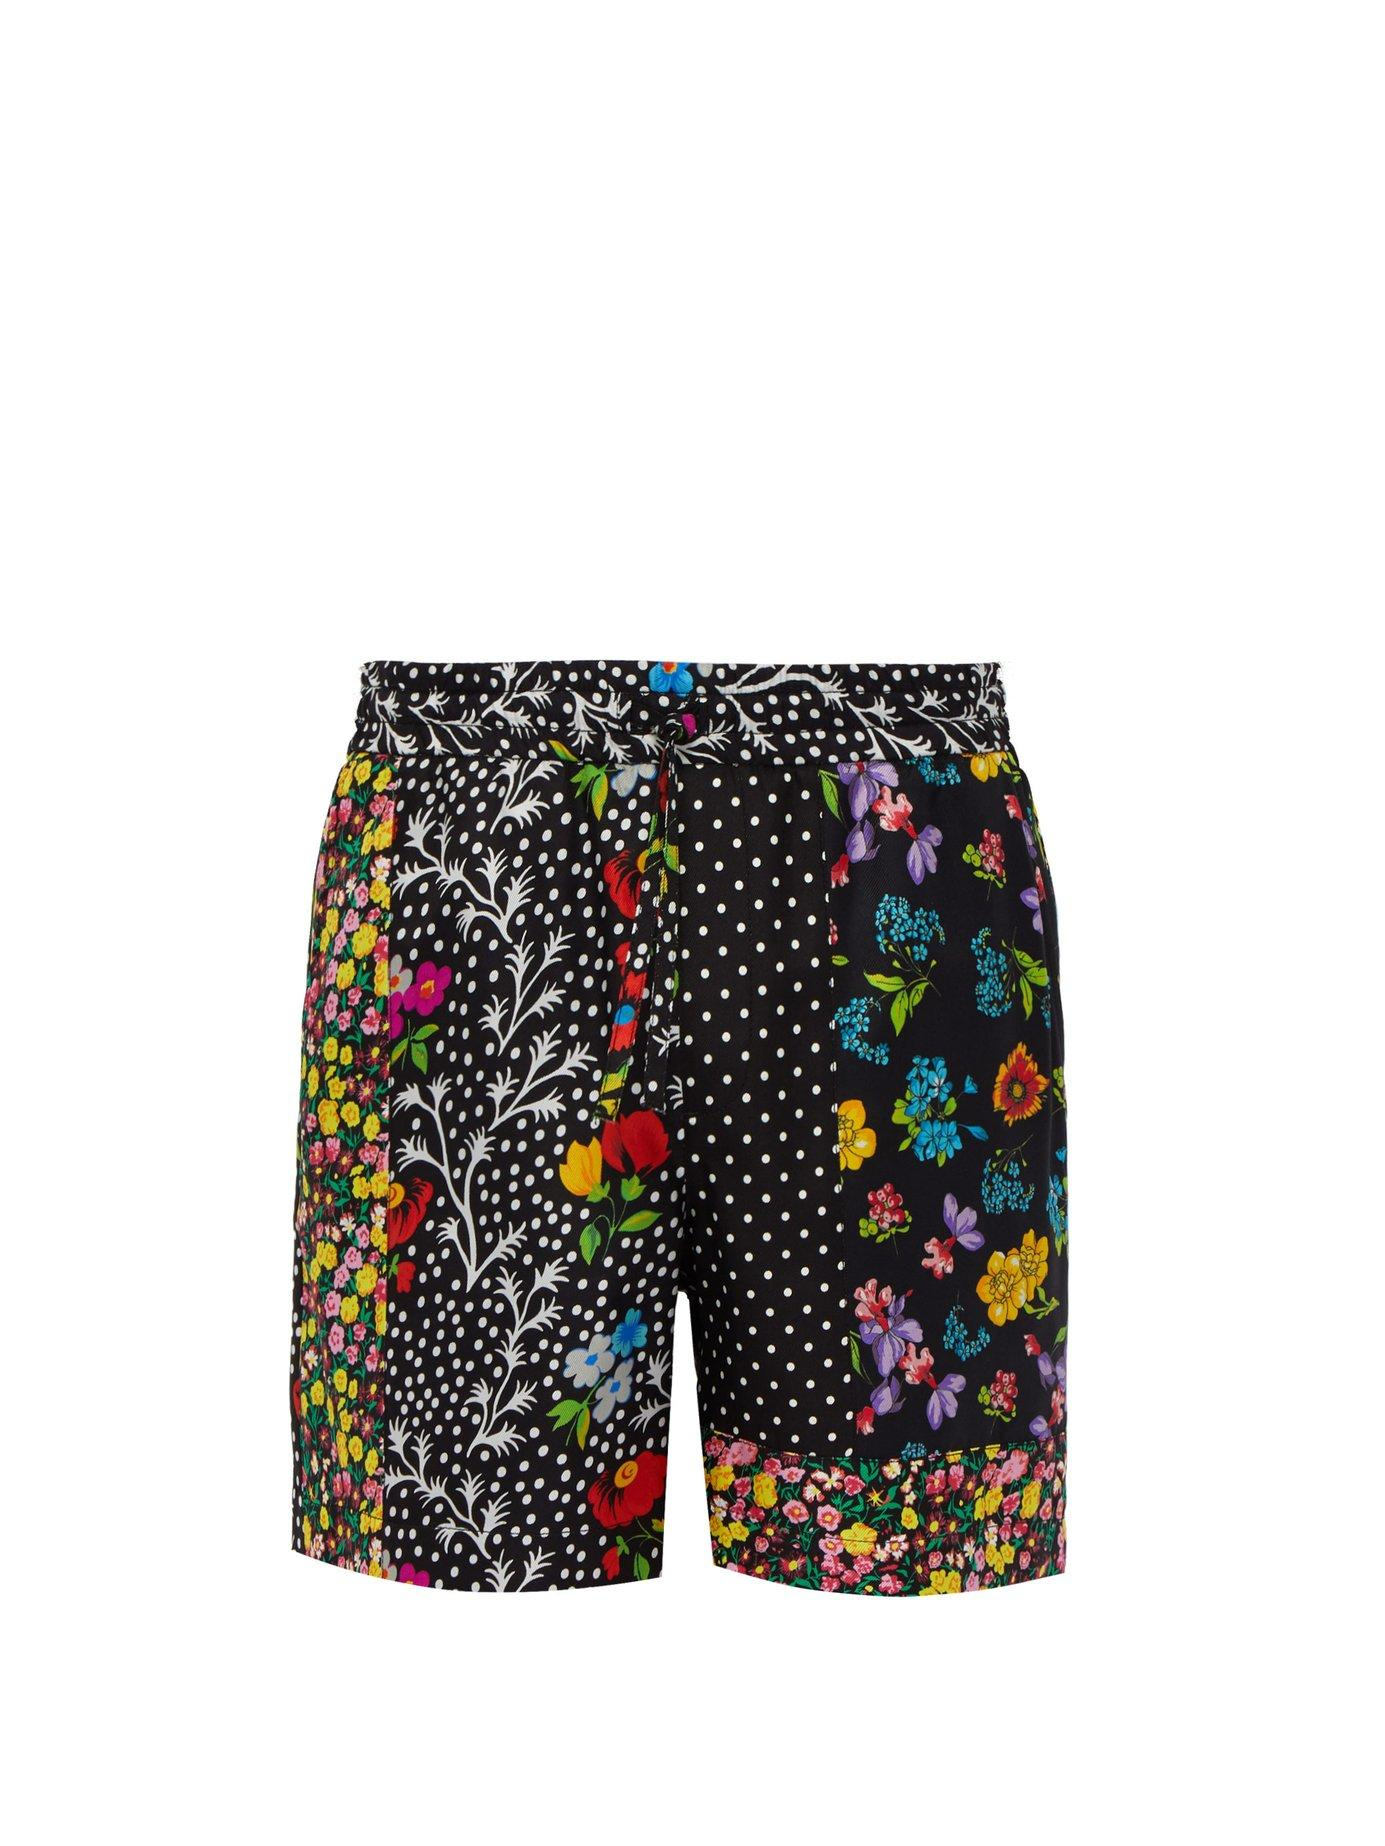 76efcc2ced Lyst - Versace Floral Printed Silk Twill Shorts in Black for Men